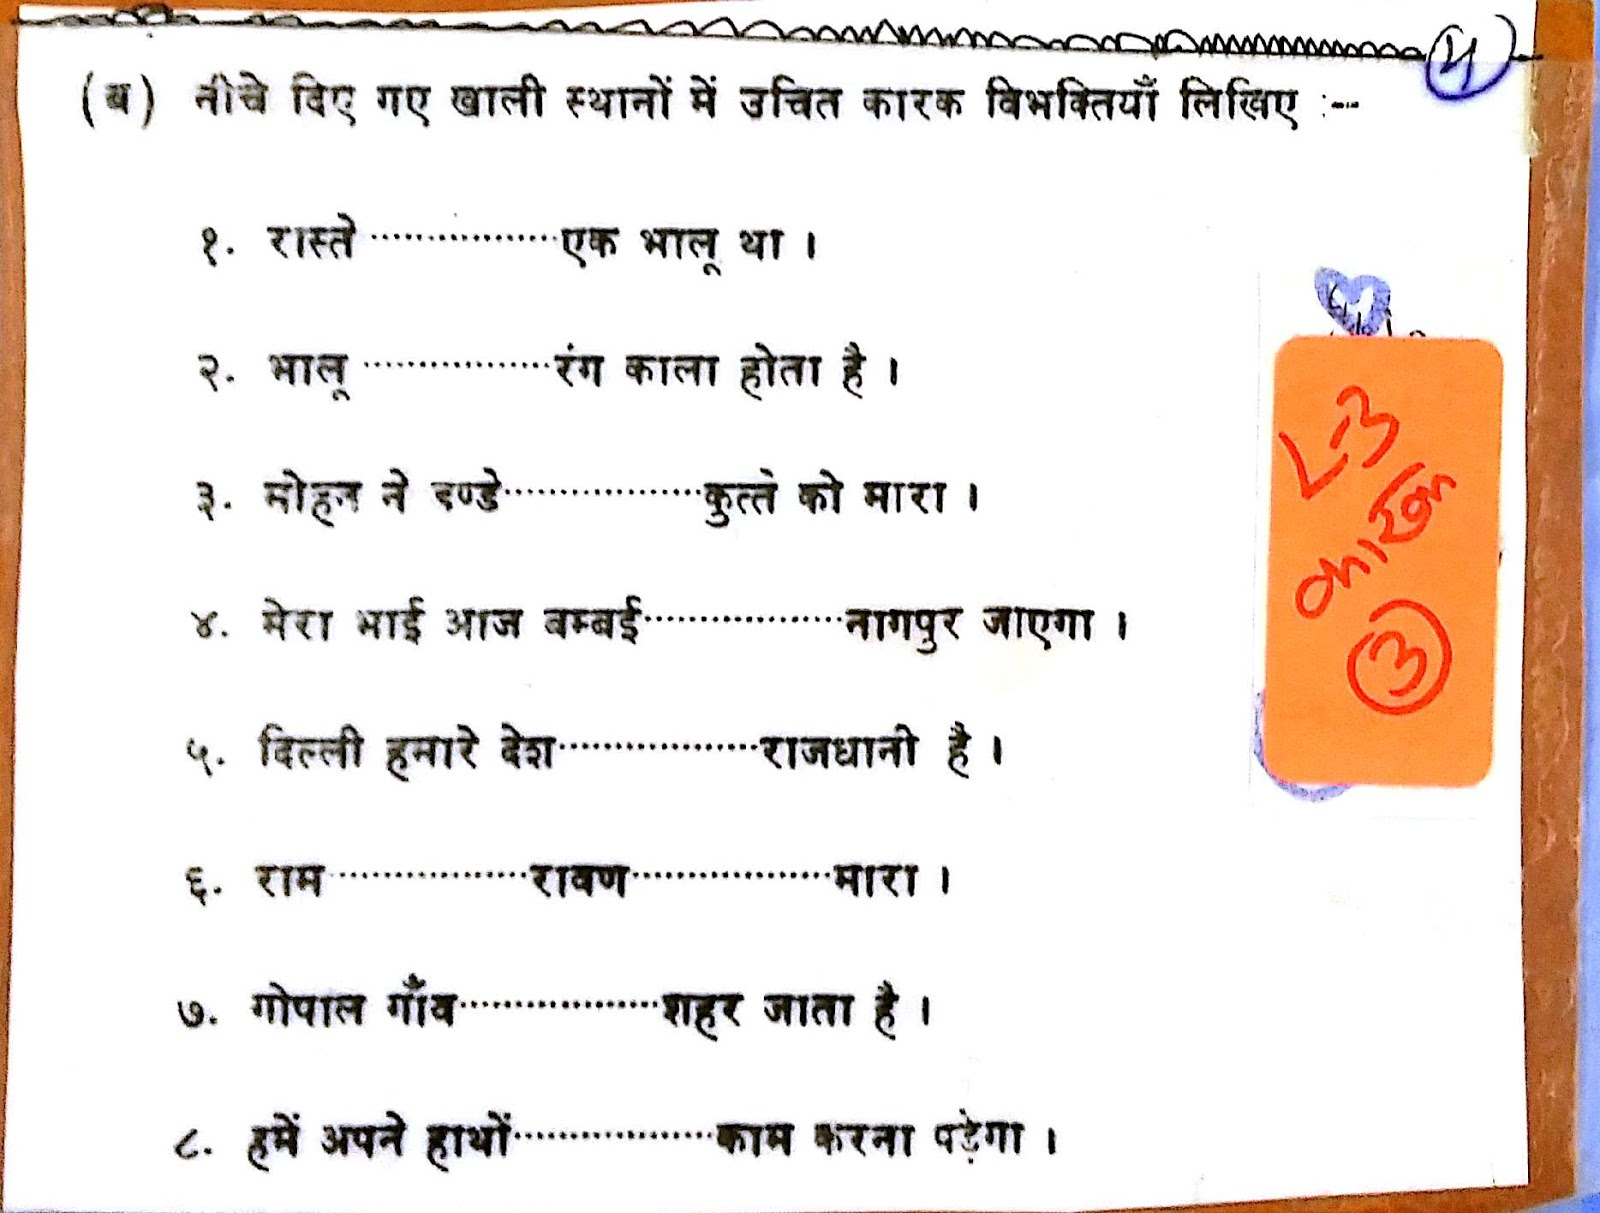 Hindi Grammar Work Sheet Collection For Classes 5 6 7 Amp 8 Cases Or Karak Work Sheets For